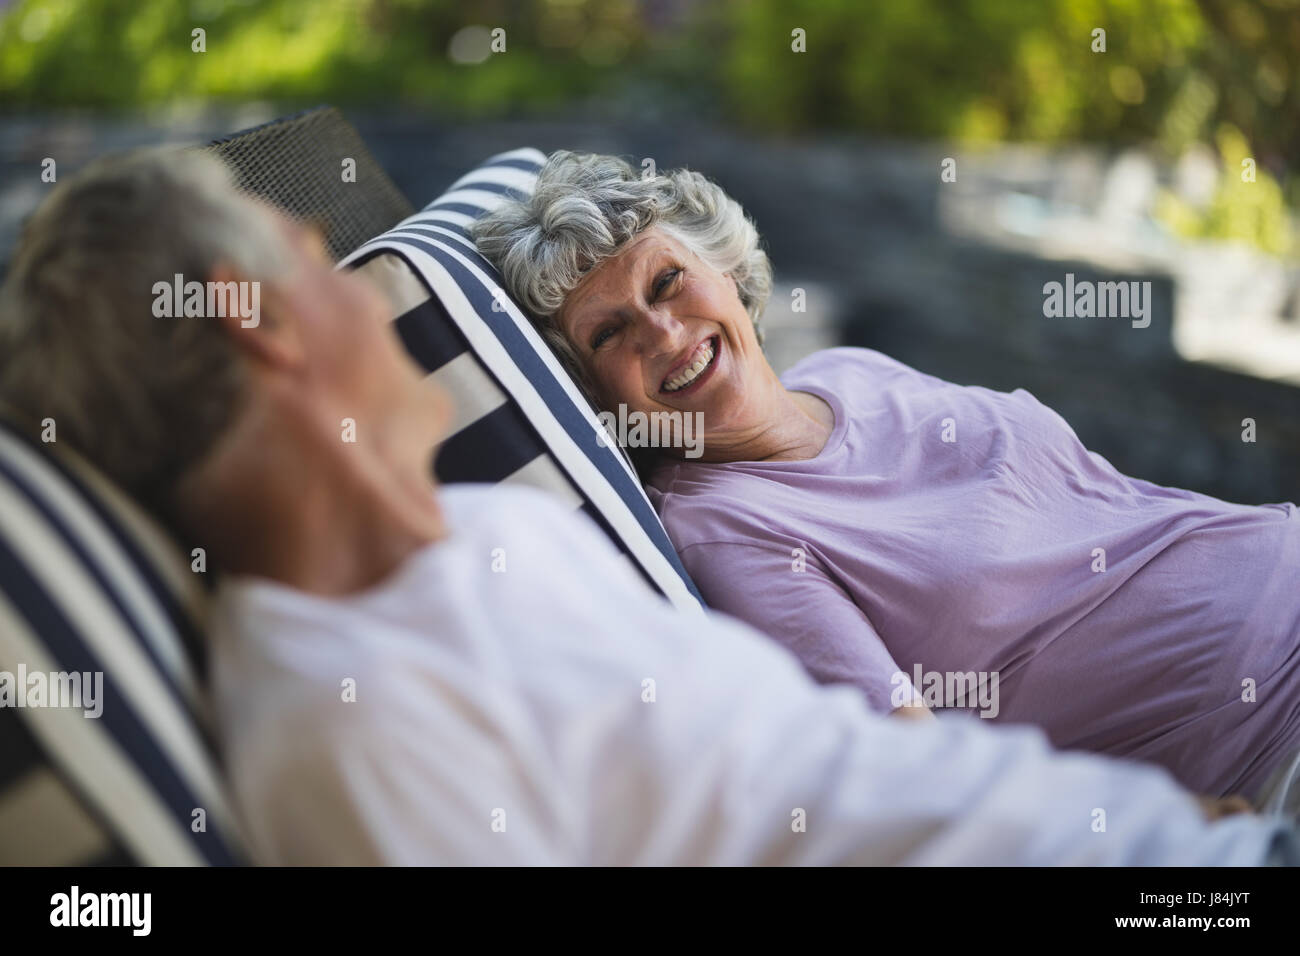 Smiling senior woman looking at man resting together on lounge chairs - Stock Image